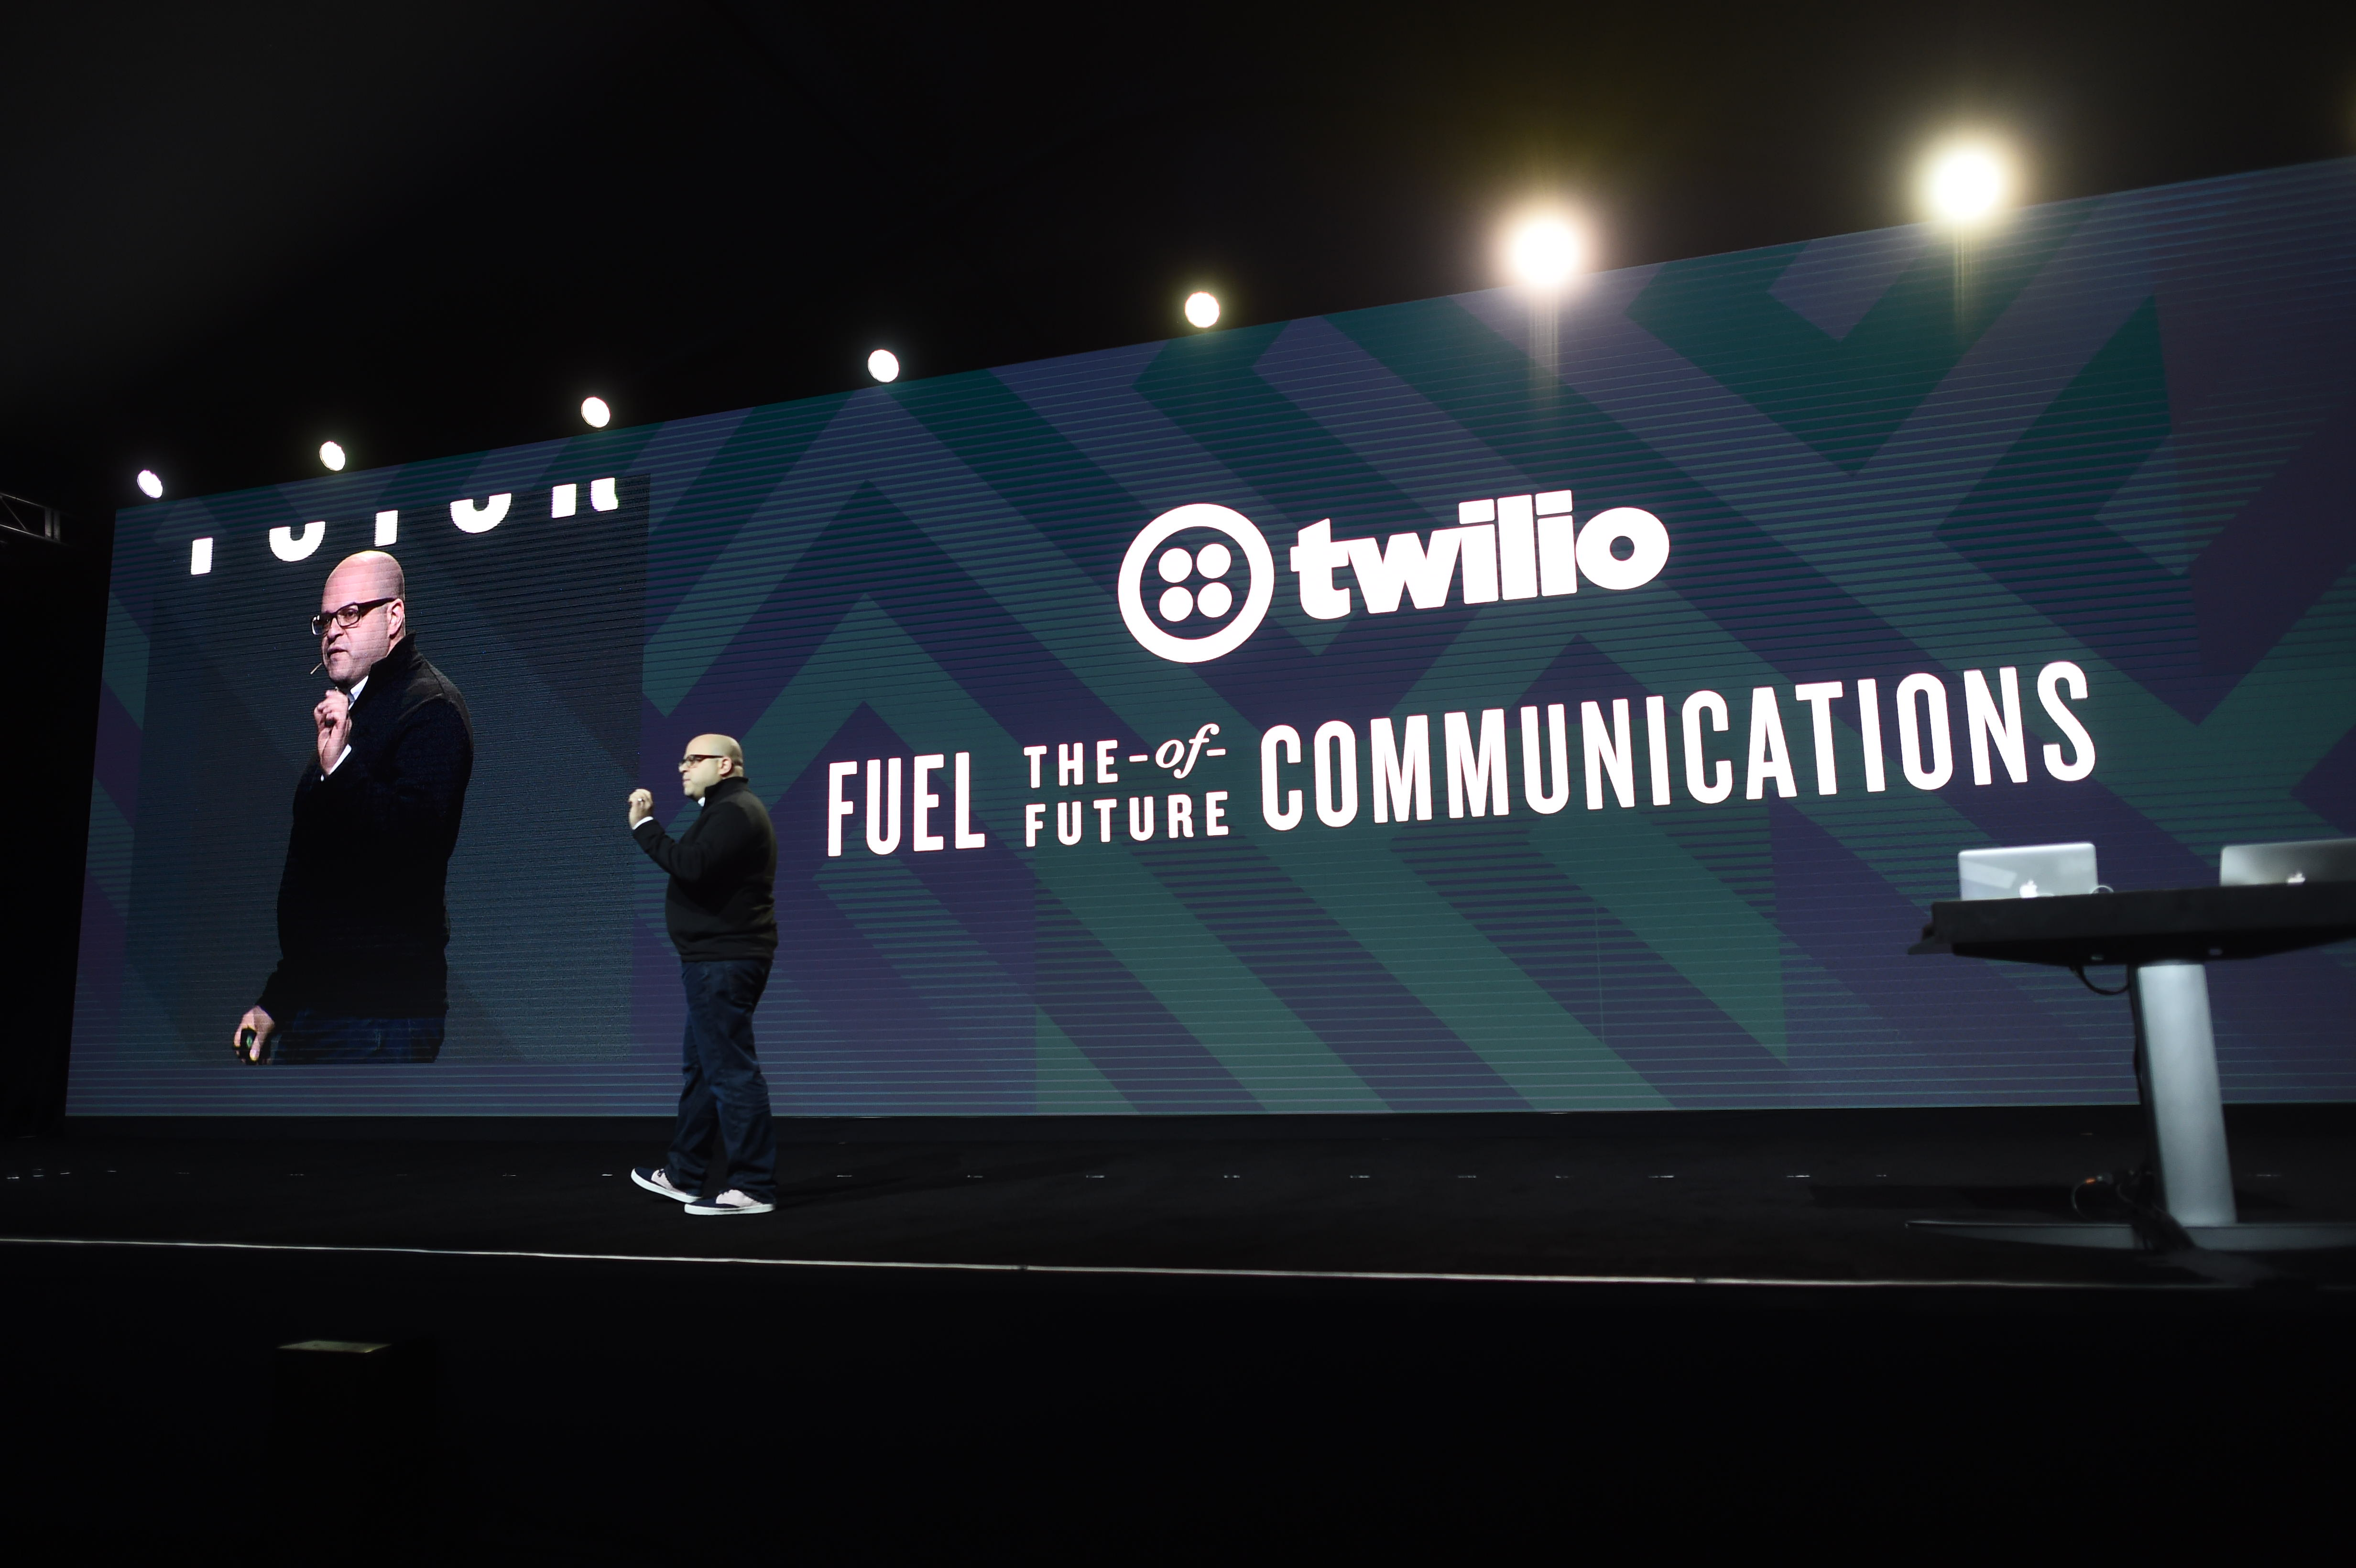 Twilio chief executive Jeff Lawson on stage at the company's Signal conference in San Francisco, Calif. in 2016.